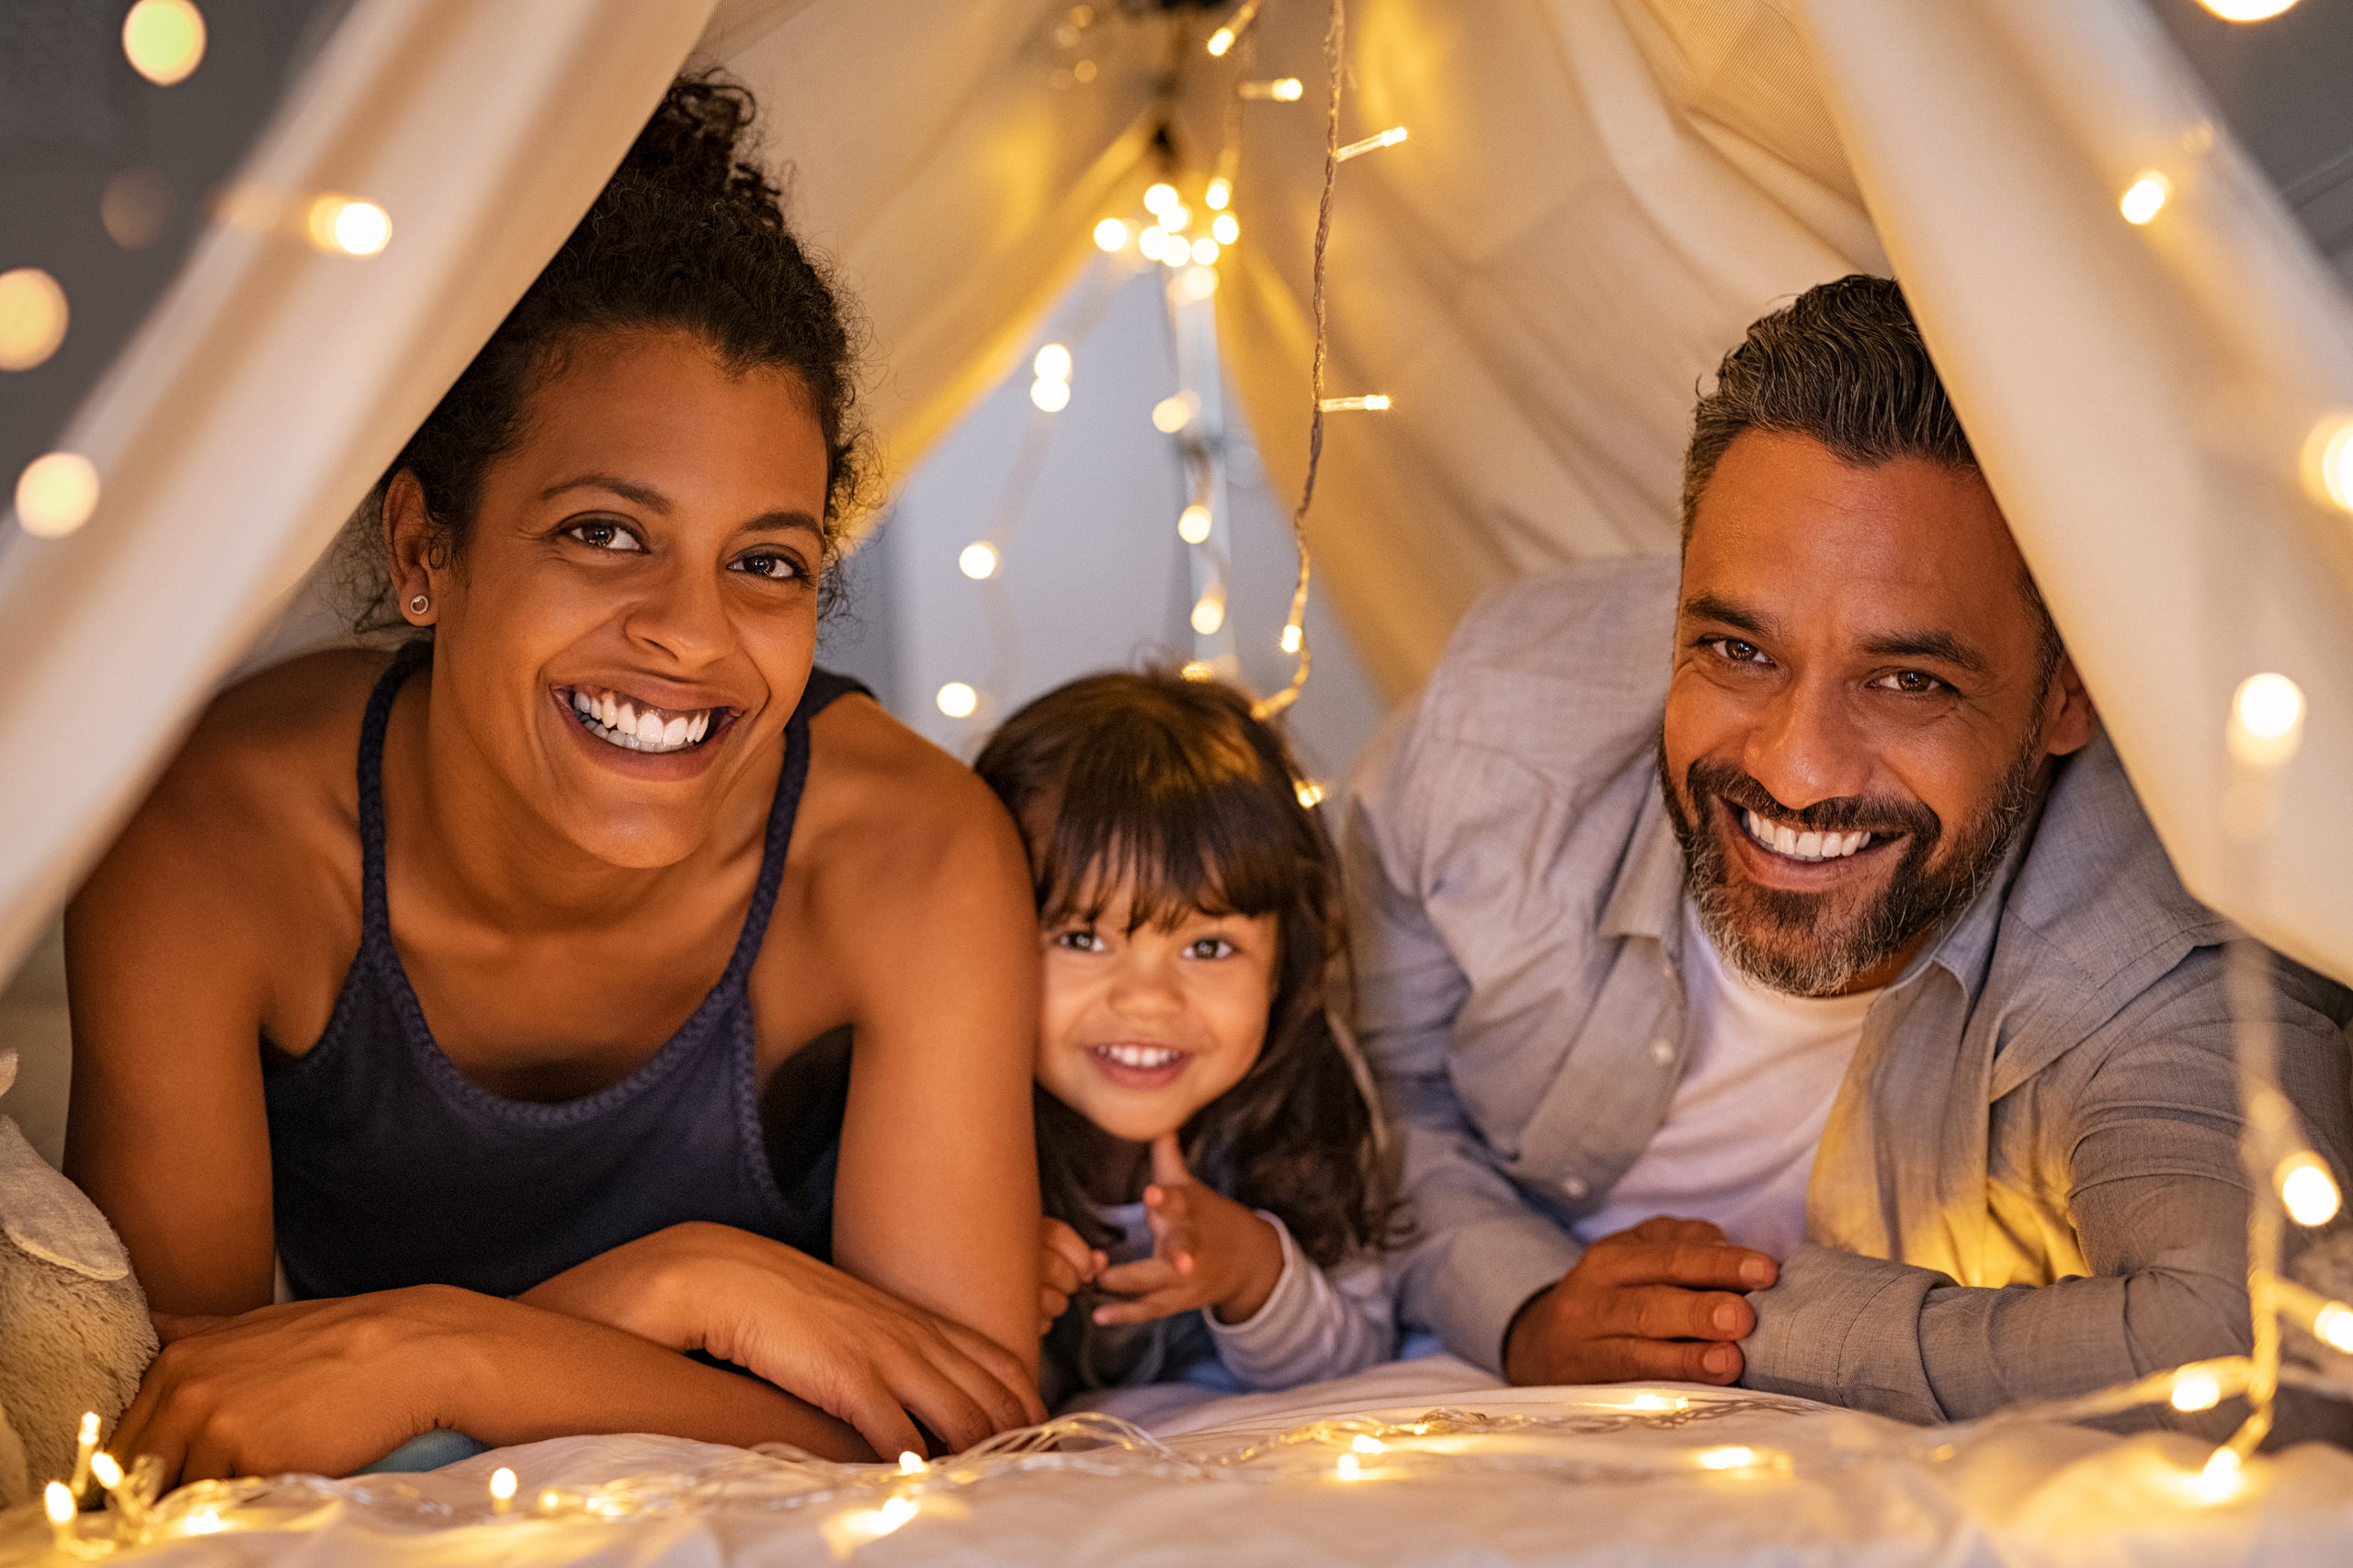 a happy mom and dad lay smiling with their daughter in a tent with fairy lights.